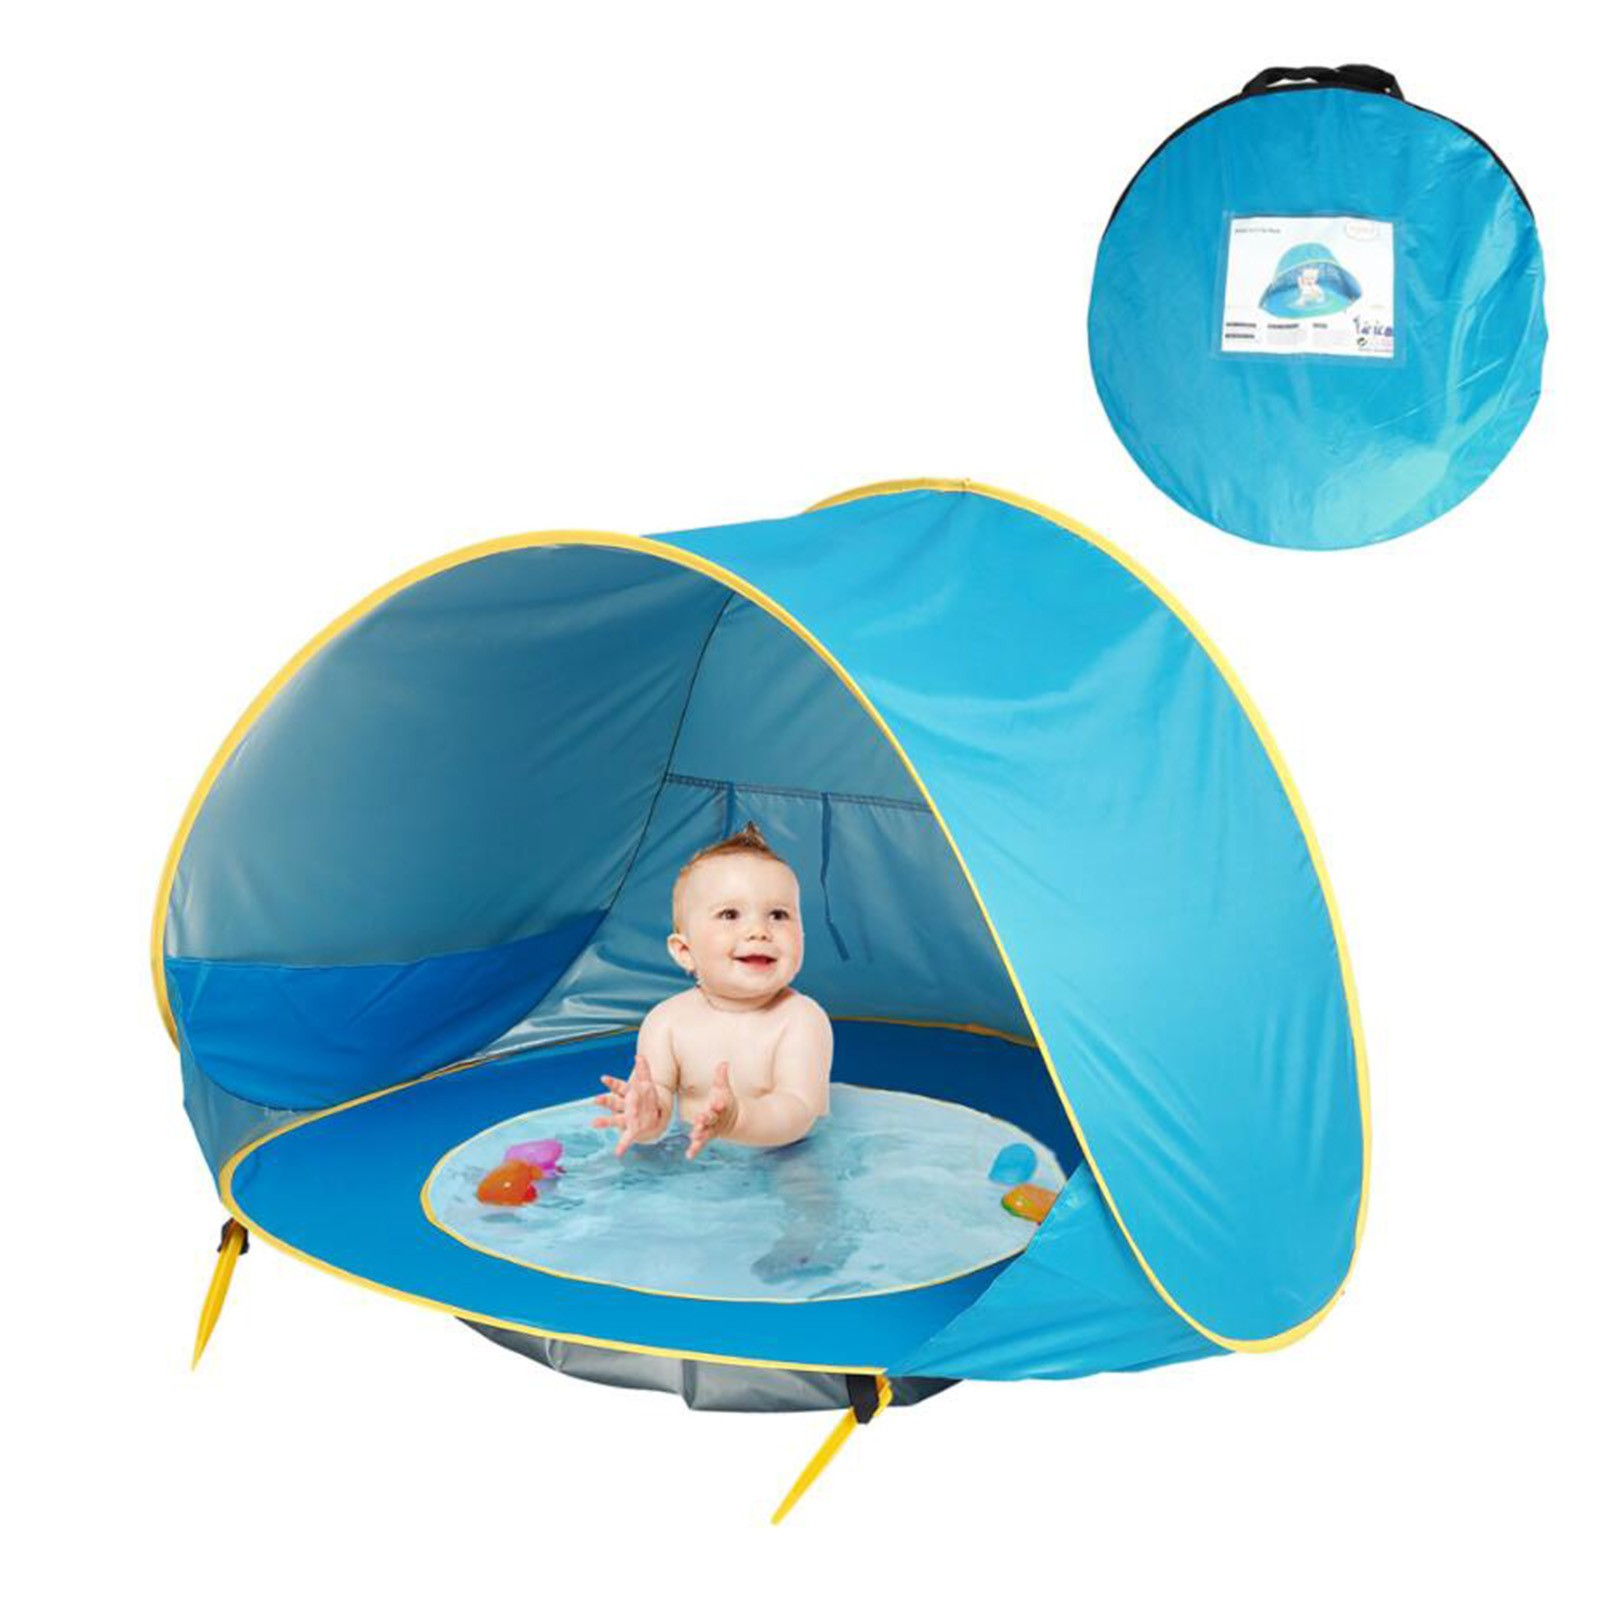 Baby Beach Tent Children Waterproof Sun Awning Tent UV-Protecting Sunshelter With Pool Kid Outdoor Camping Sunshade Tent